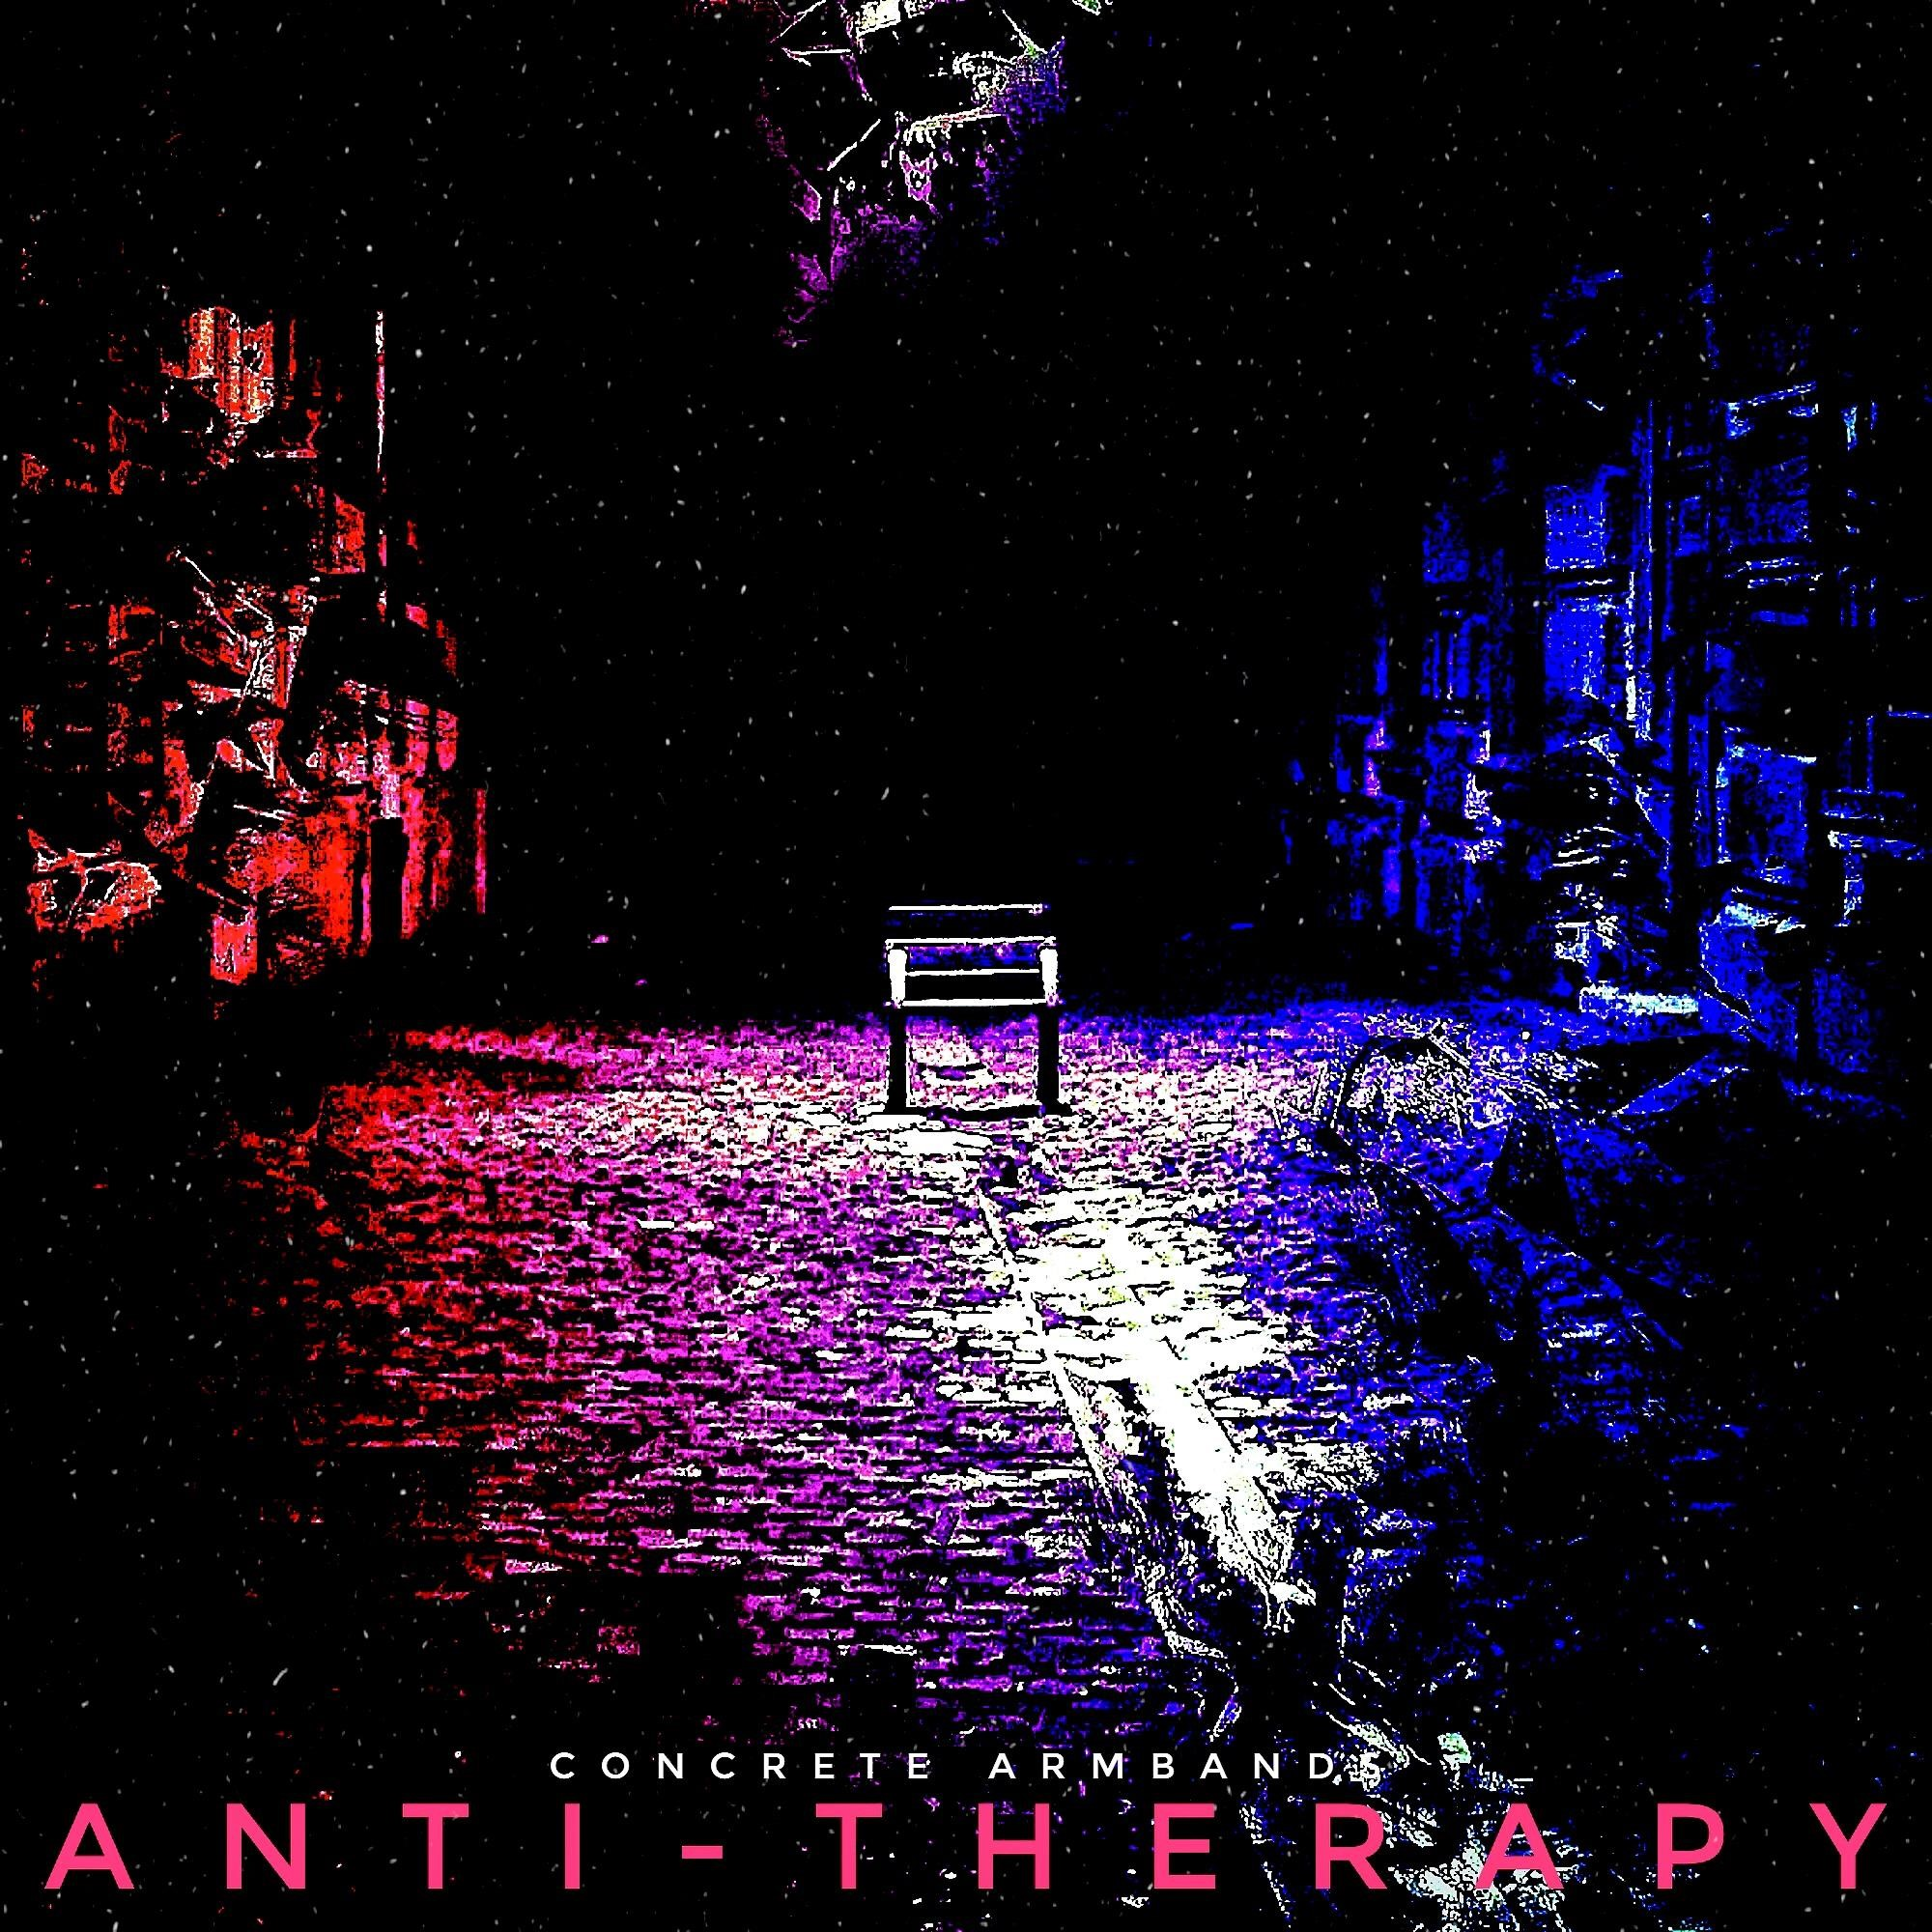 Review: Anti-Therapy EP by Concrete Armbands